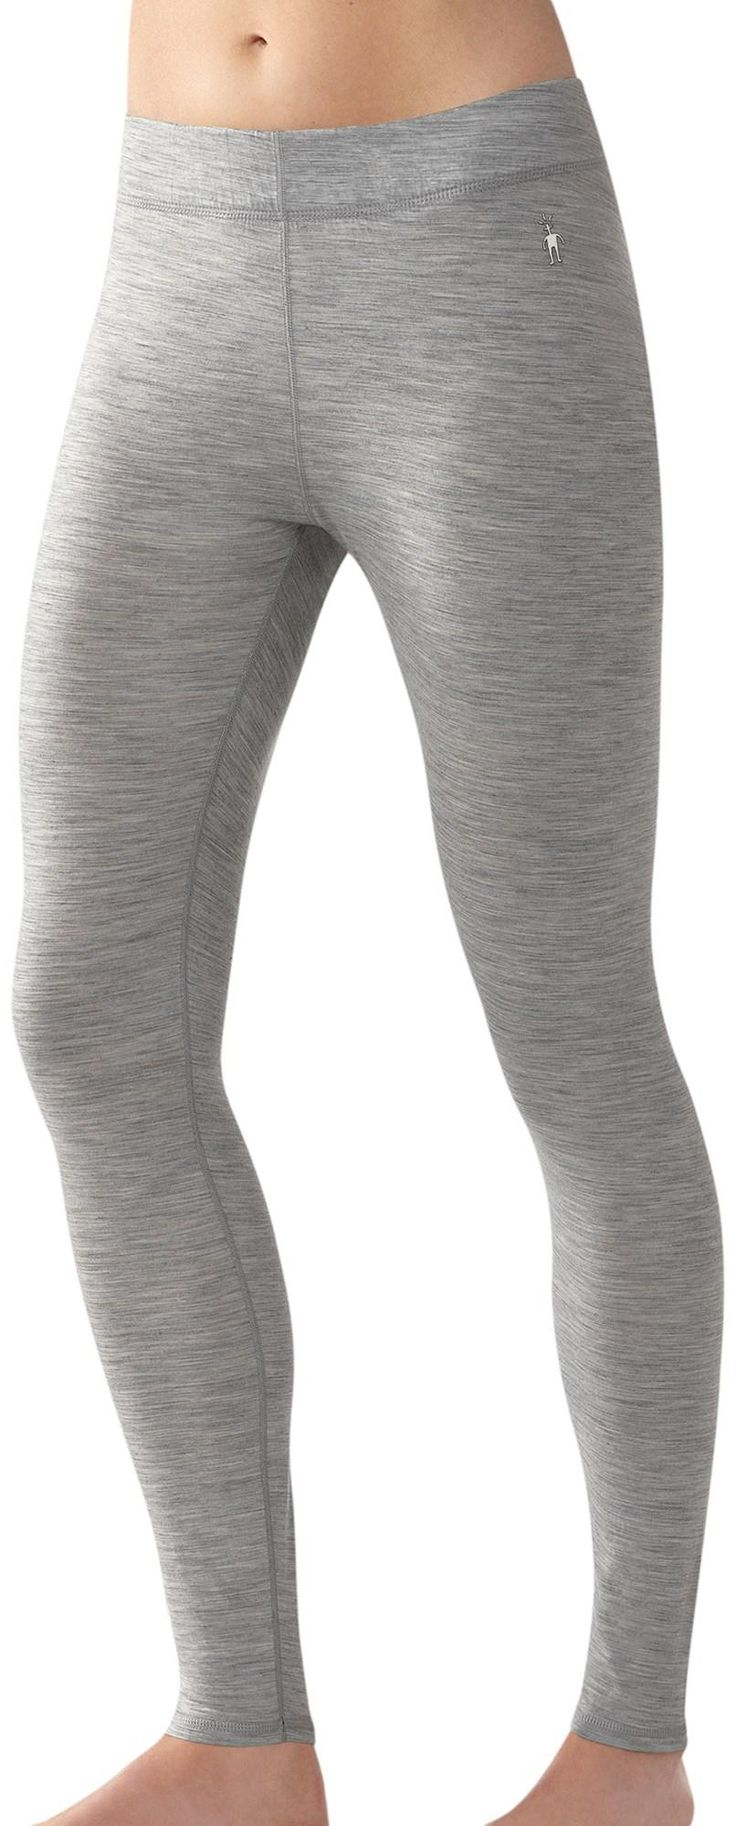 The SmartWool Microweight long underwear bottoms for women help you get out there to enjoy your favorite activities.